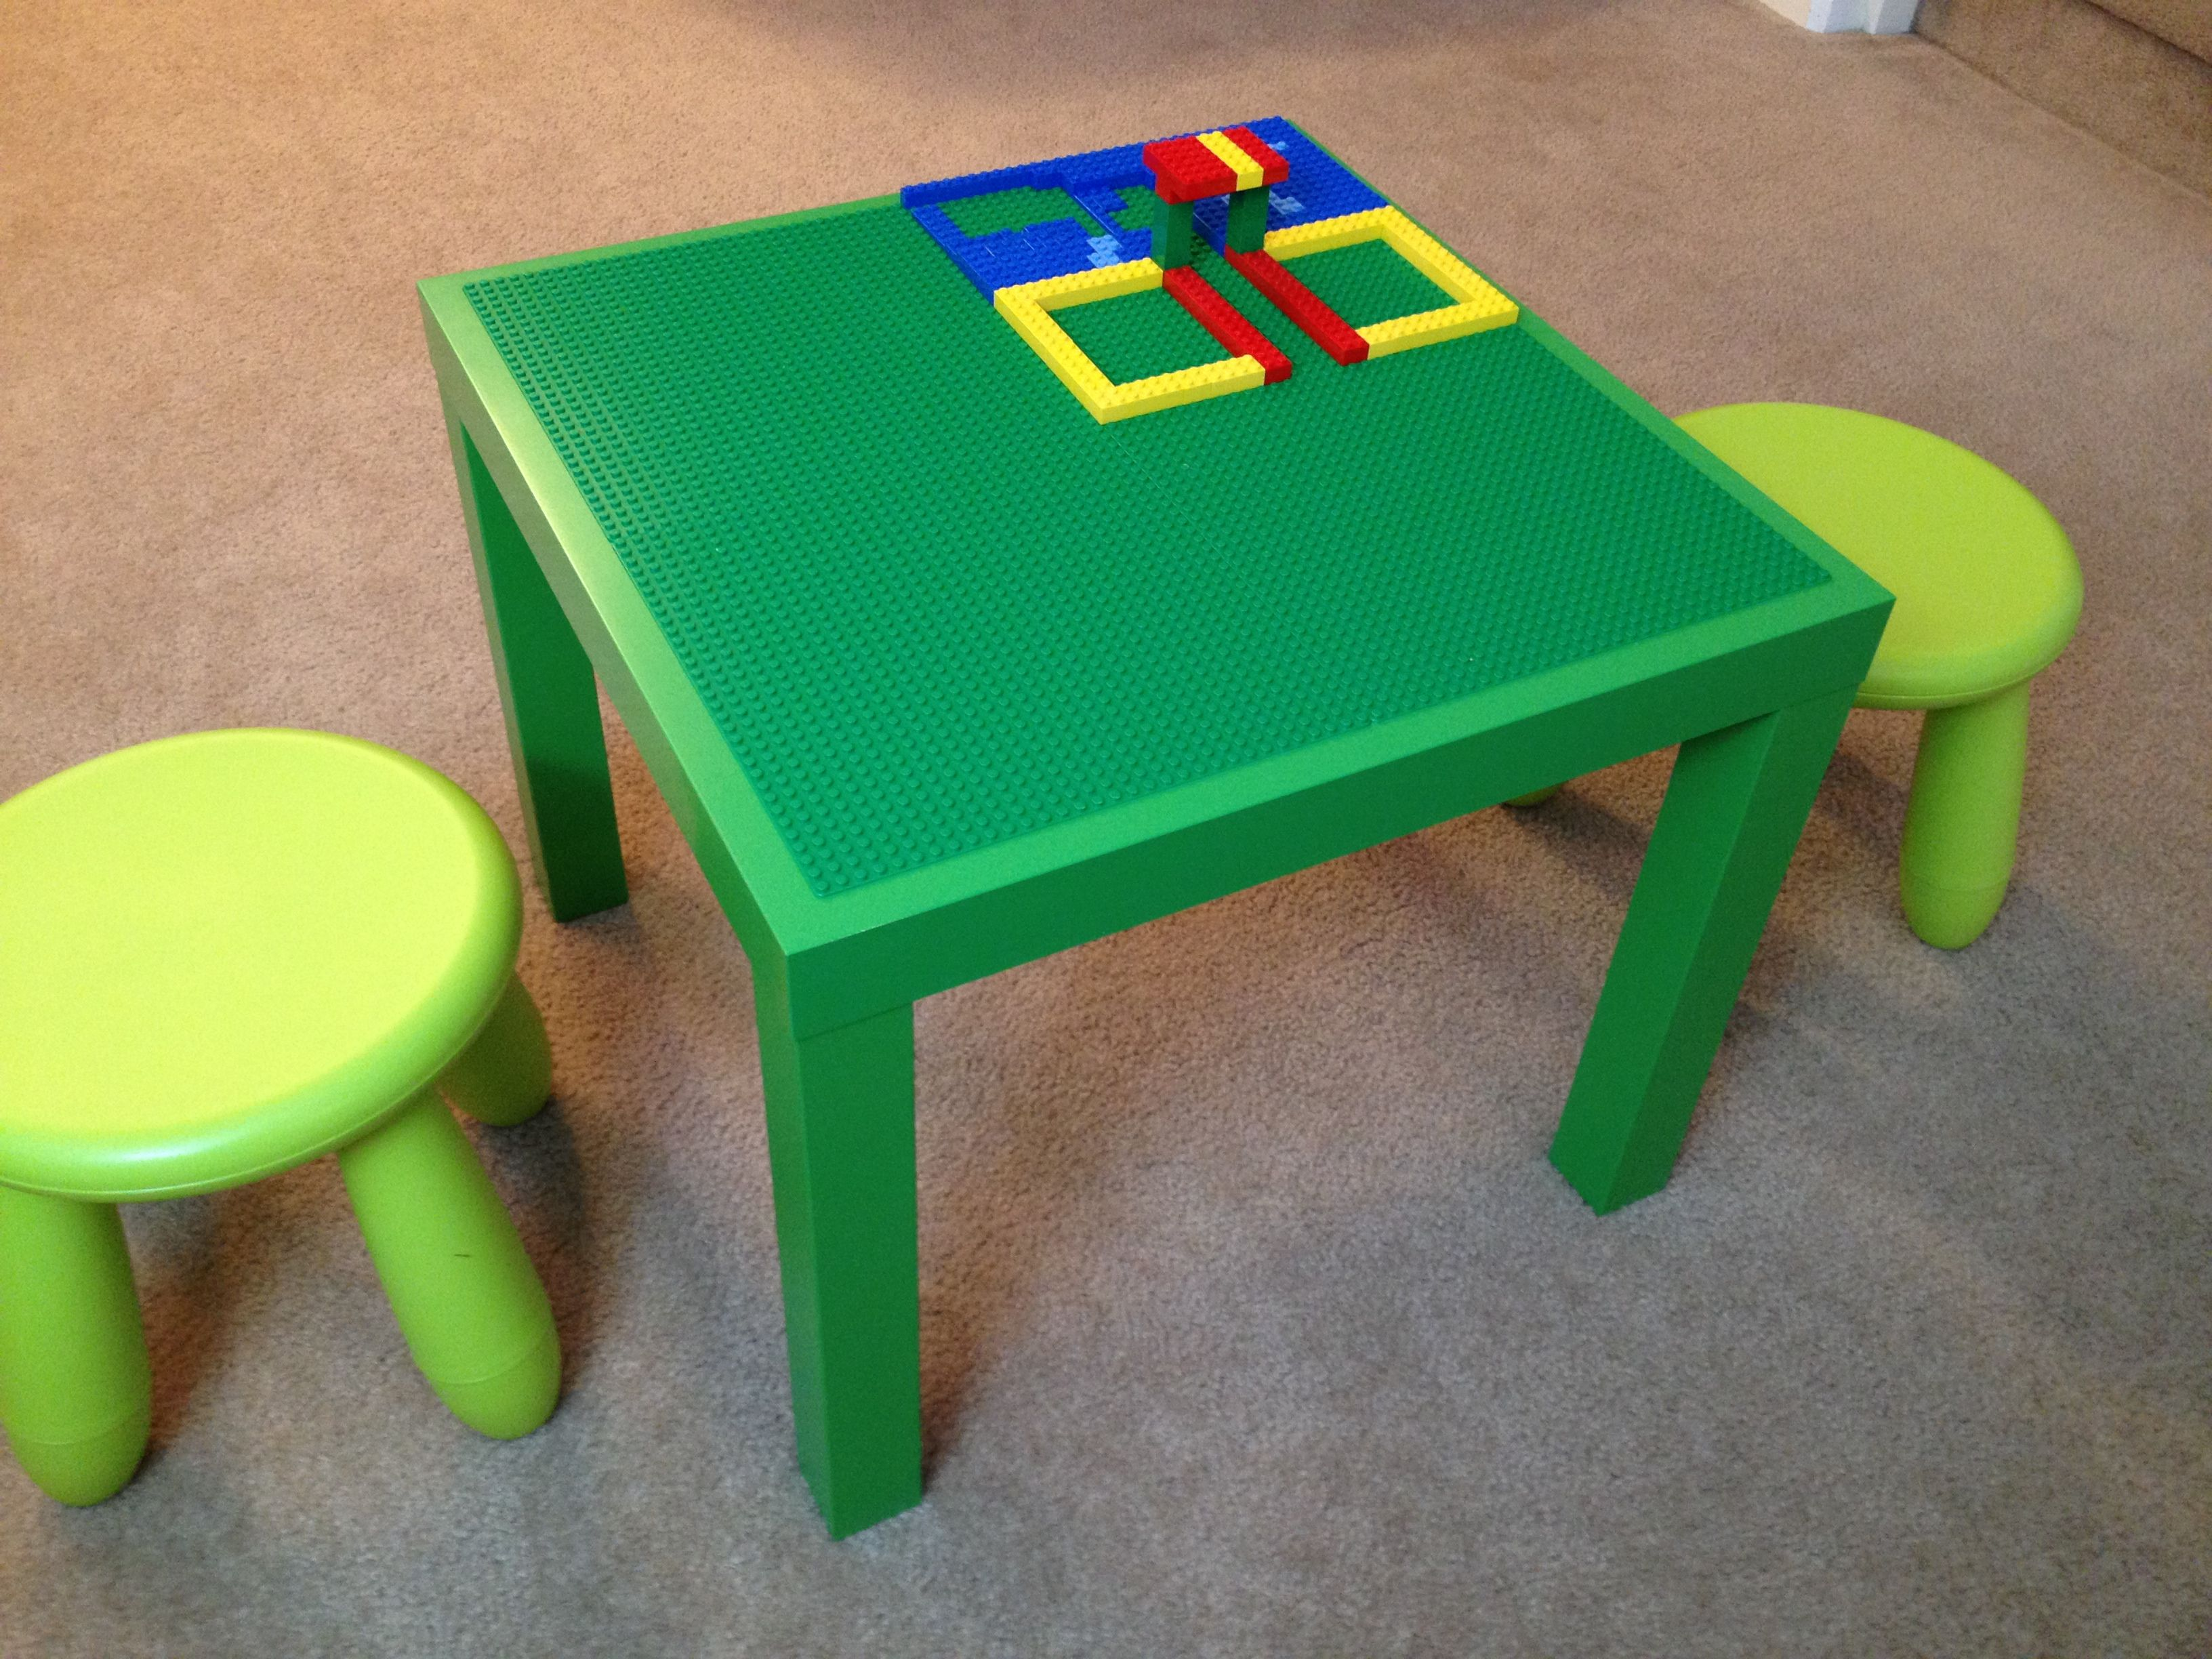 DIY IKEA Lego Table  LACK tableIm making this  DIY